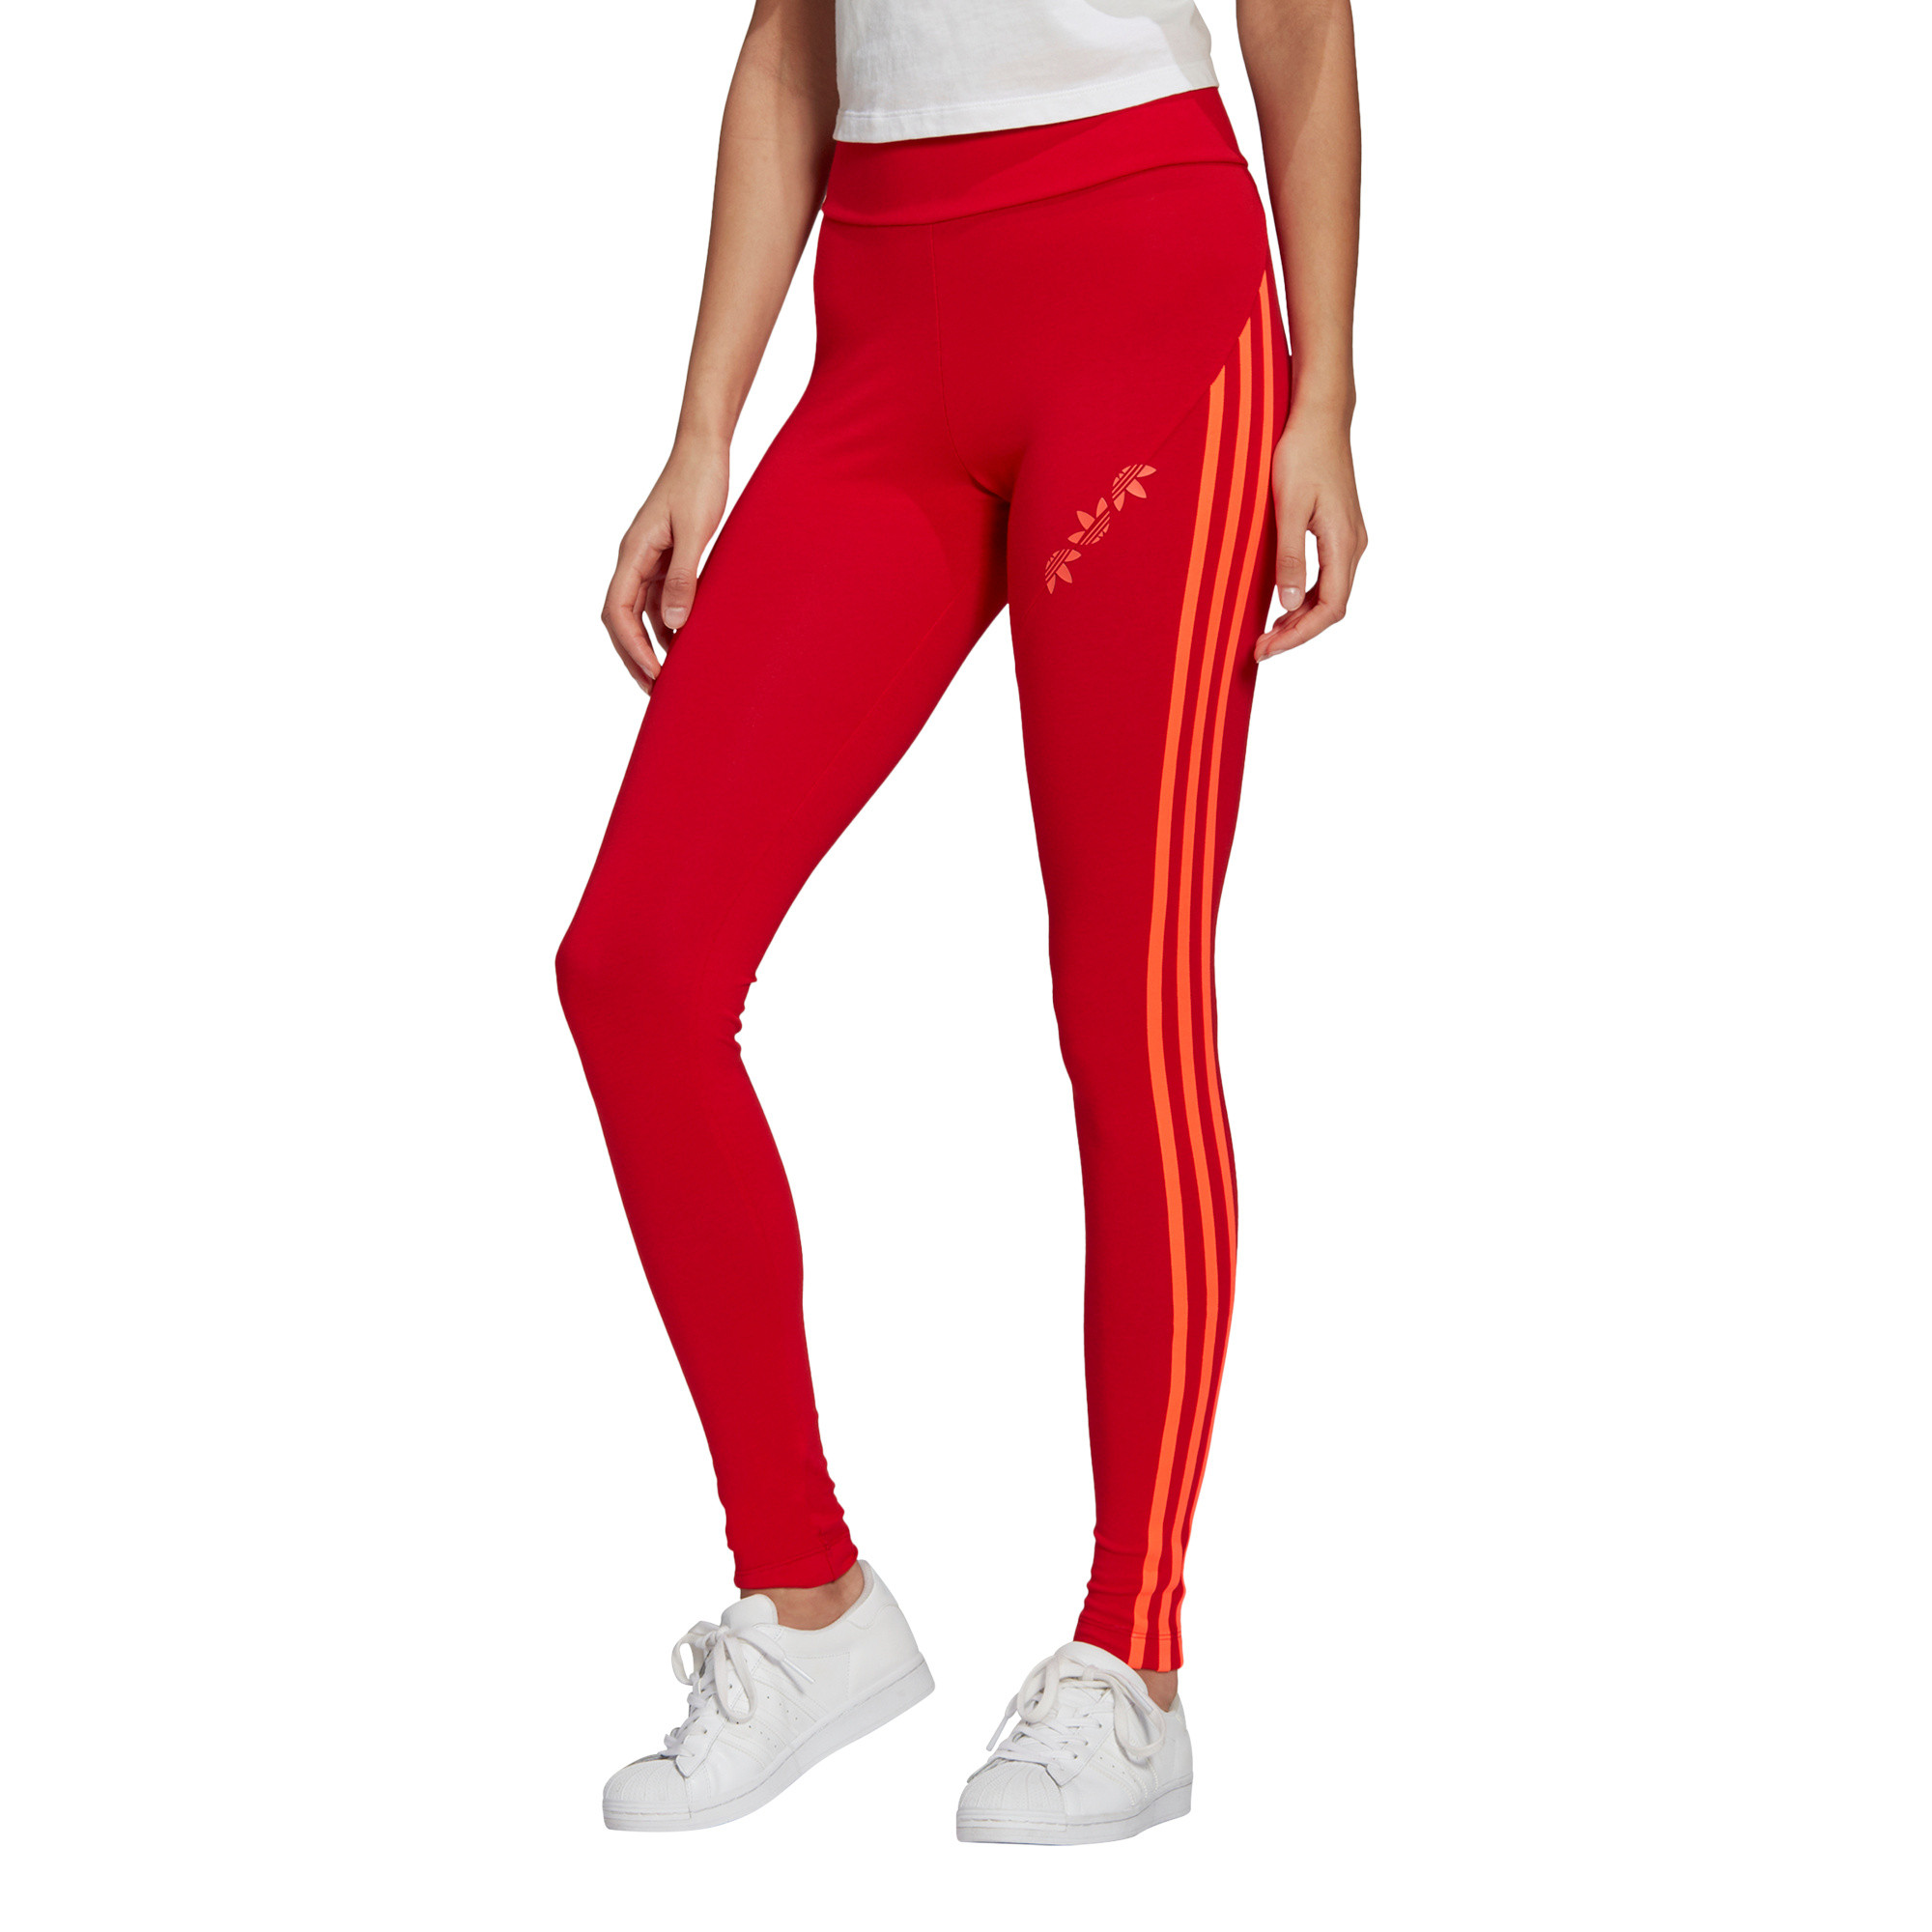 Tight adicolor Sliced Trefoil High-Waisted, Rosso, large image number 2